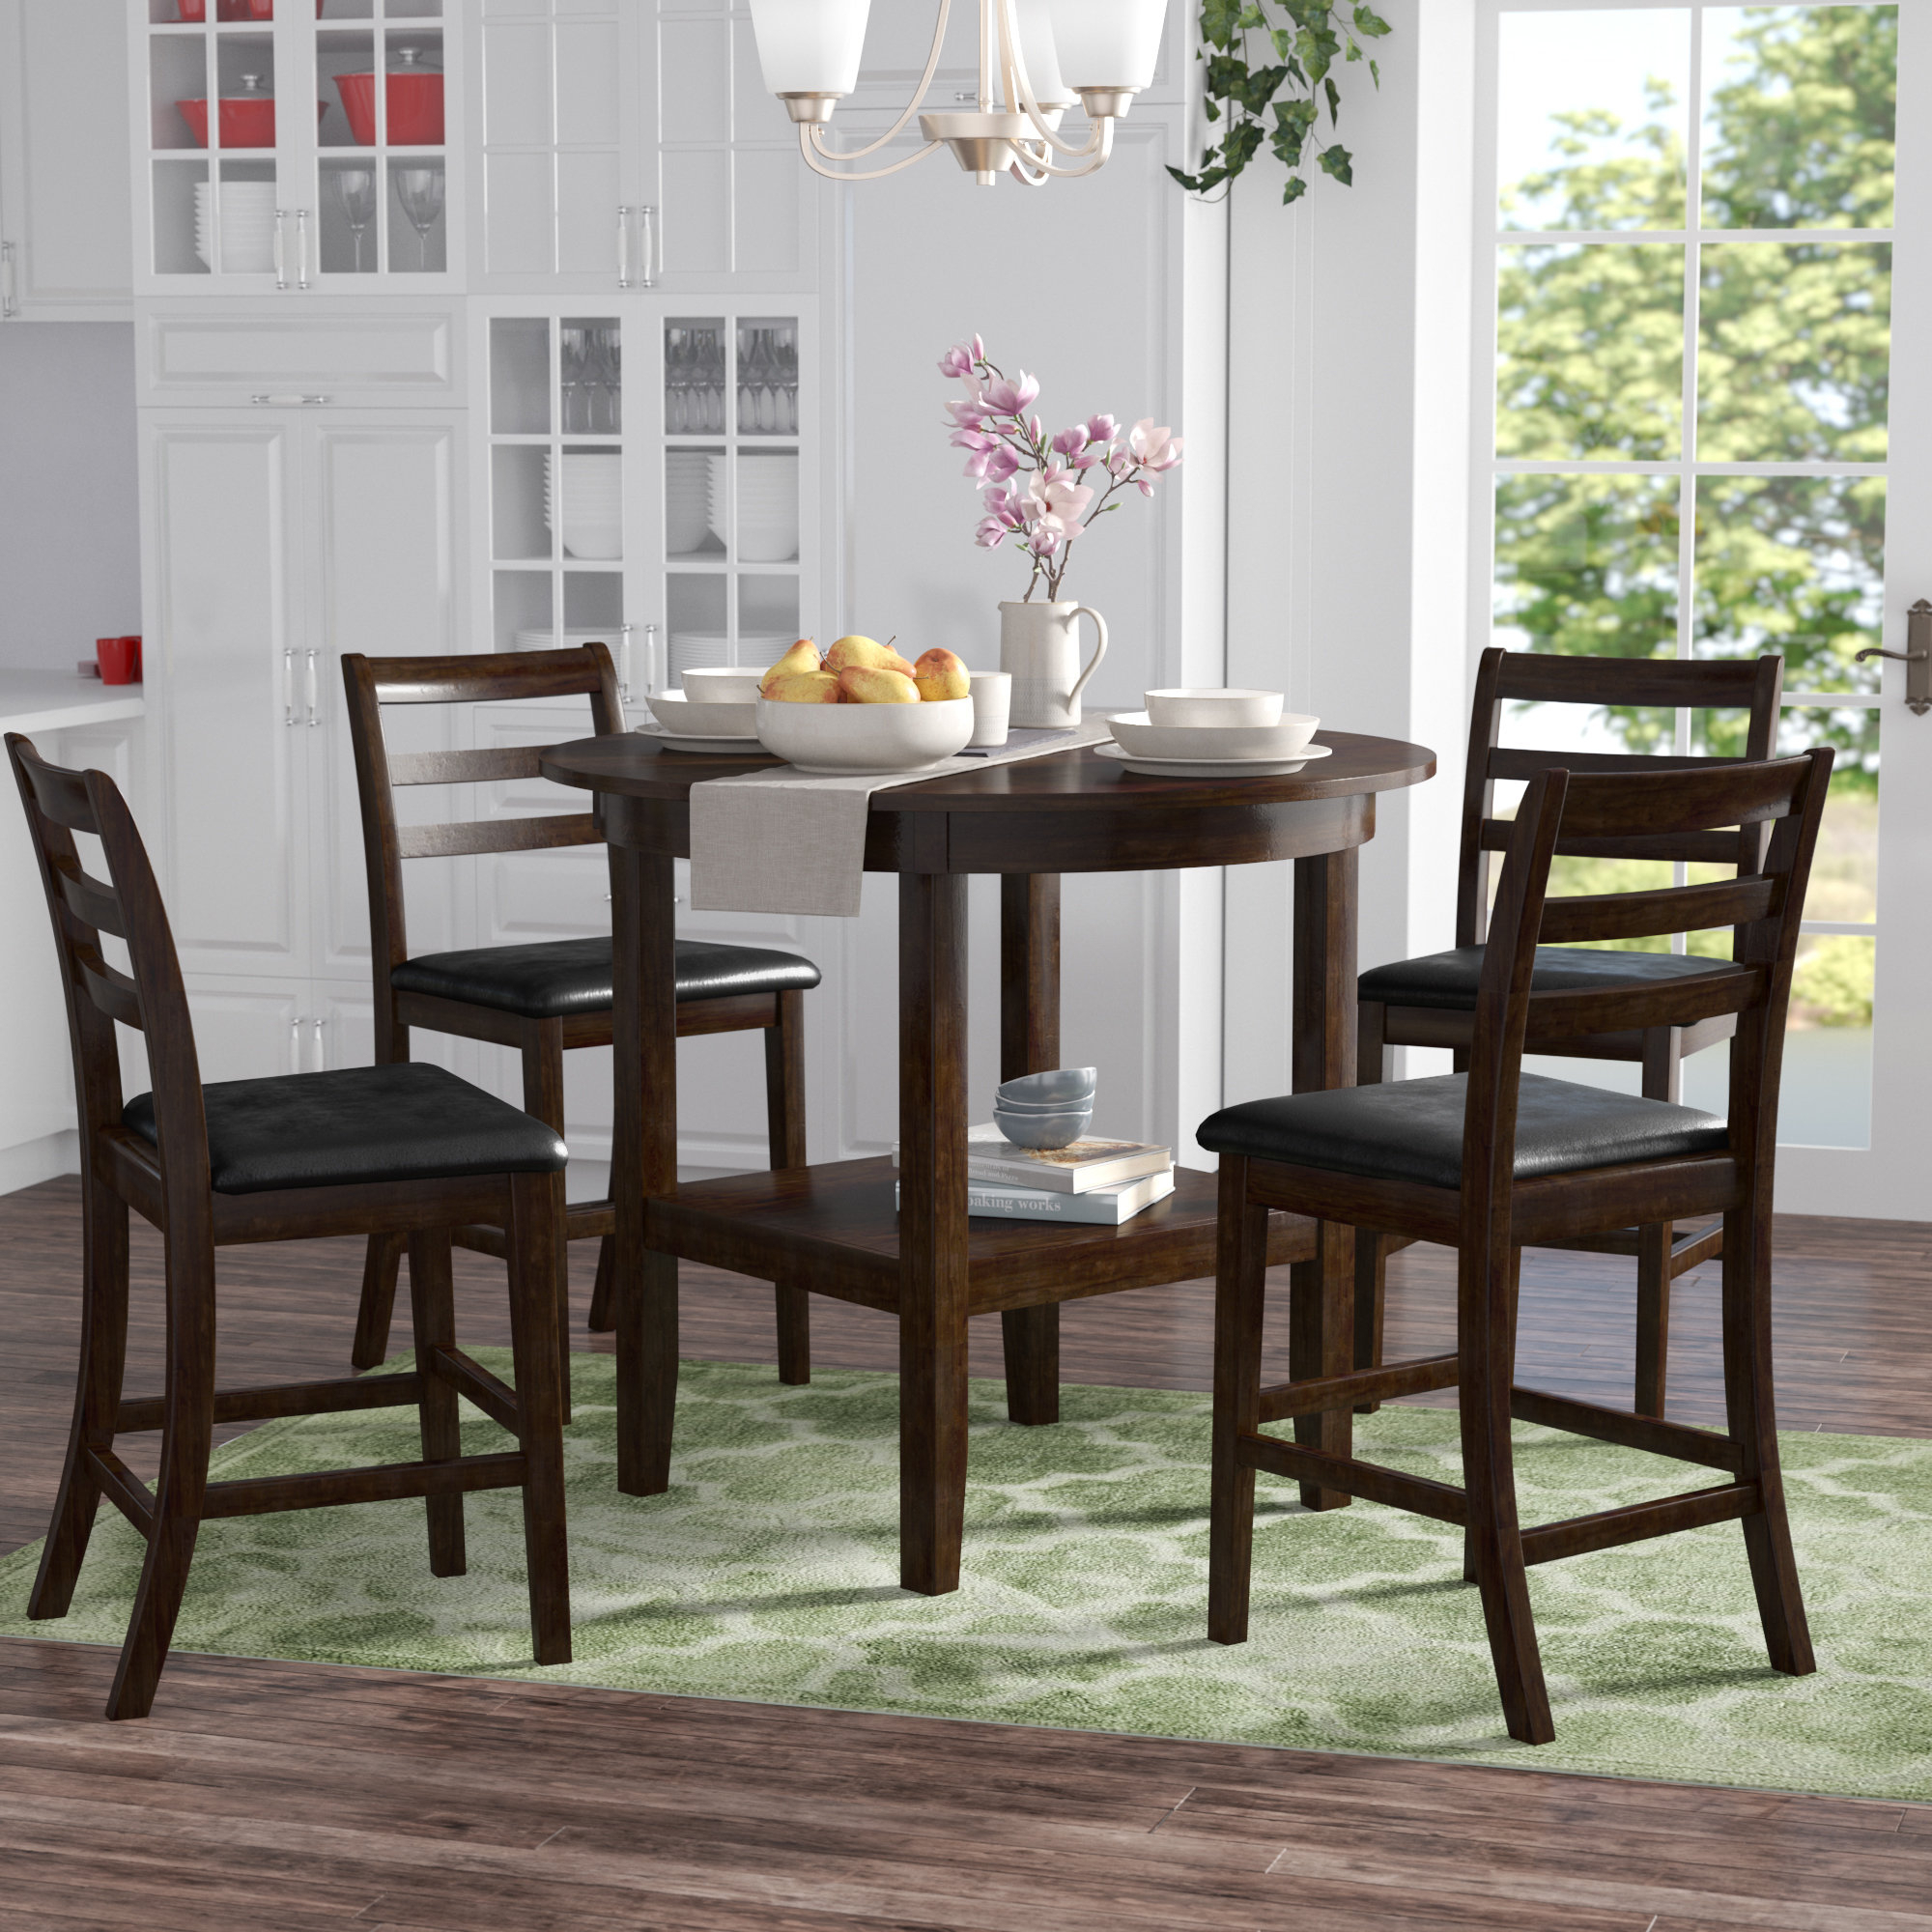 Gosselin 5 Piece Counter Height Dining Set Intended For Latest Denzel 5 Piece Counter Height Breakfast Nook Dining Sets (Image 12 of 20)